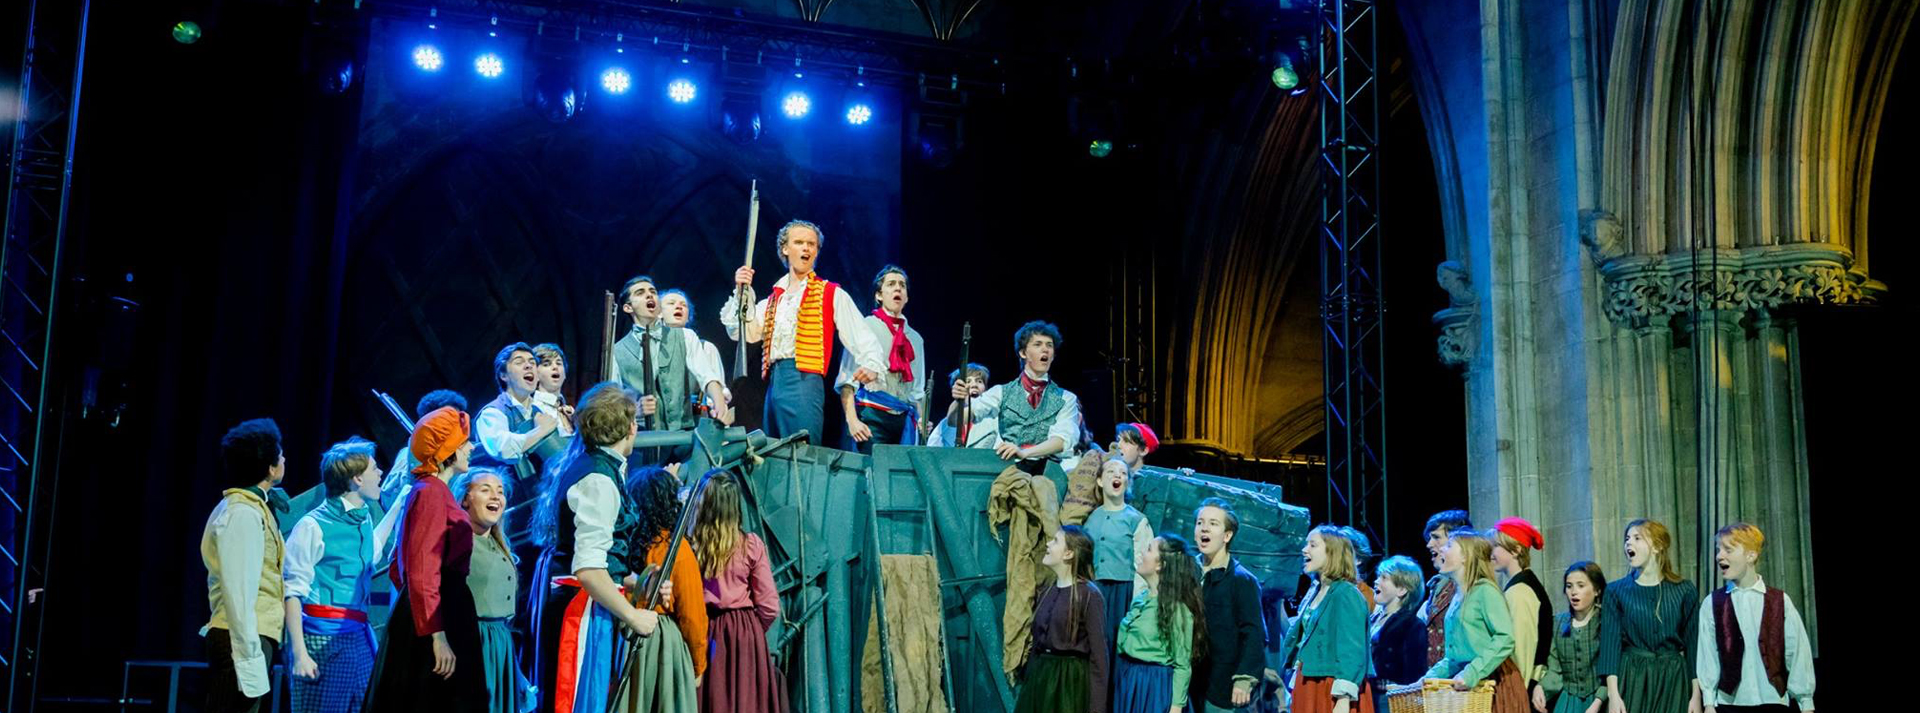 Fusion supplies new Technology to support local Youth Theatre